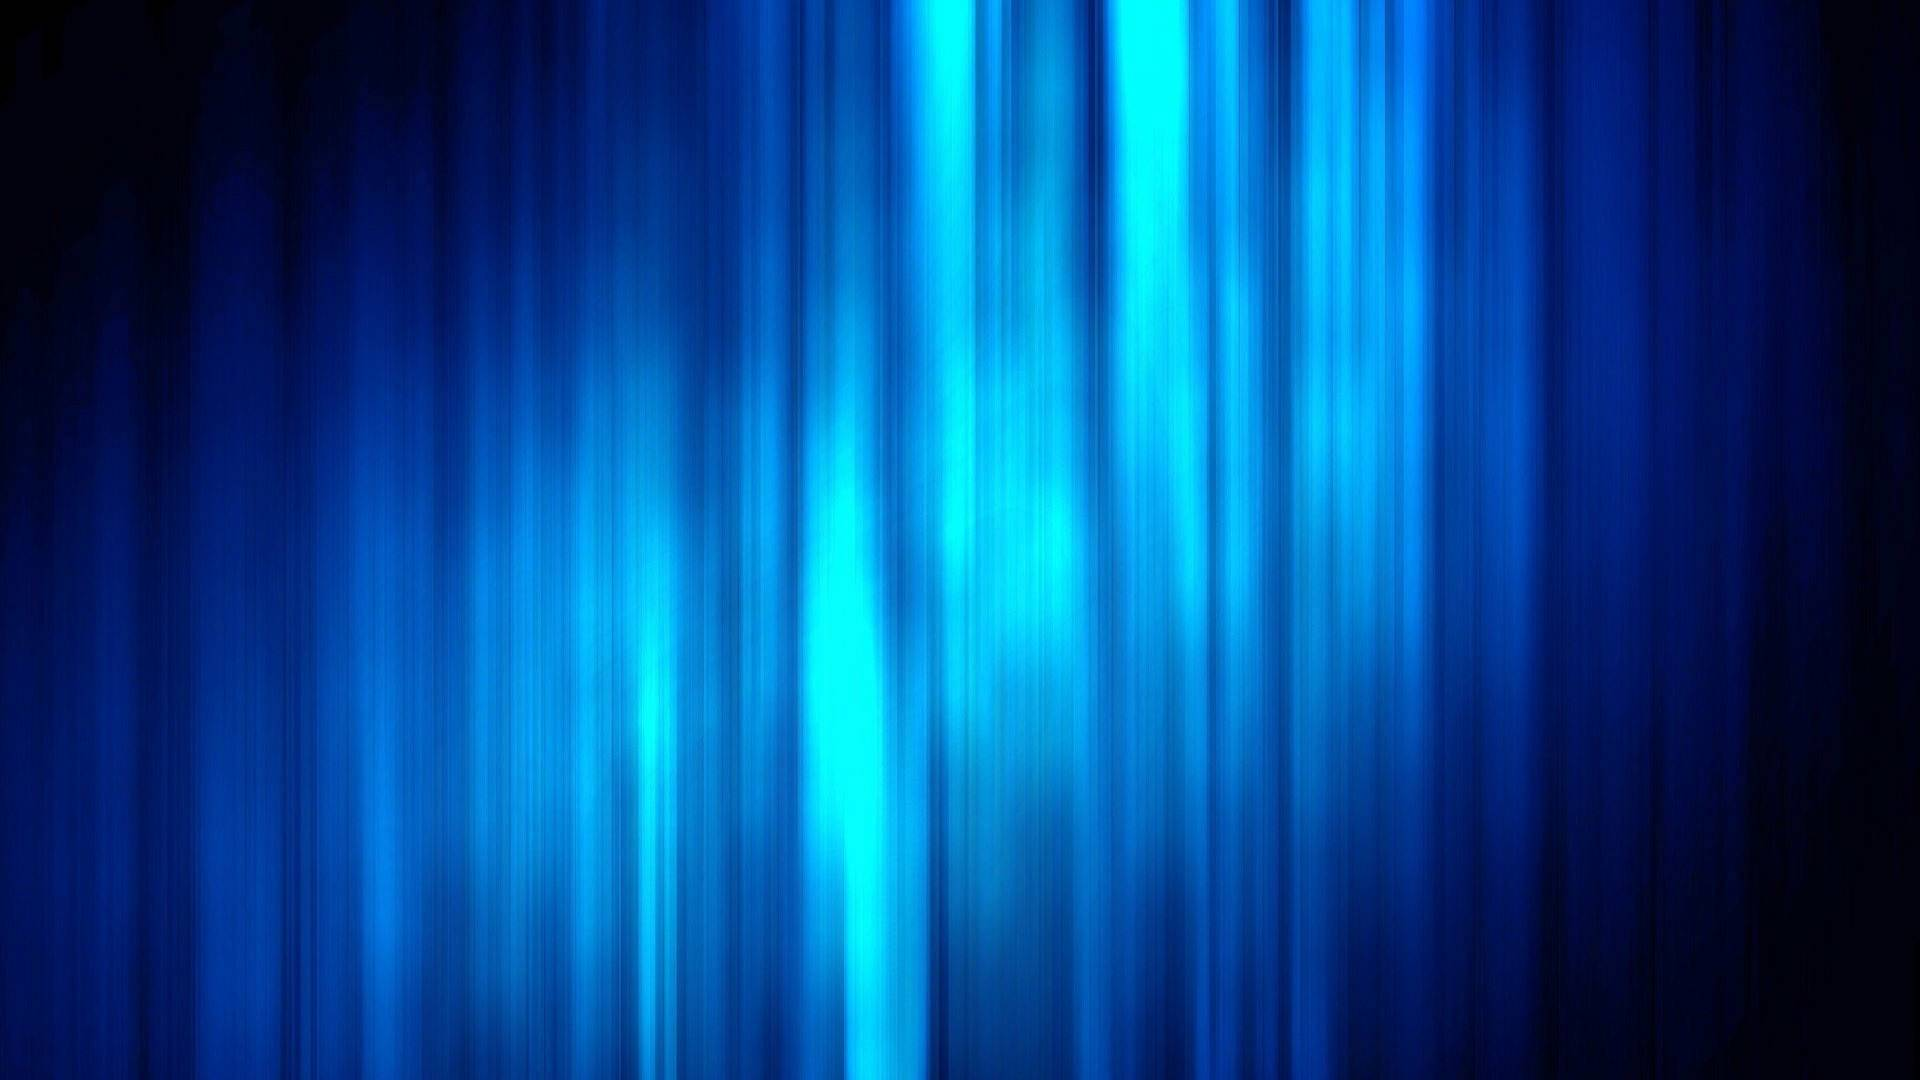 blue abstract wallpaper by - photo #13